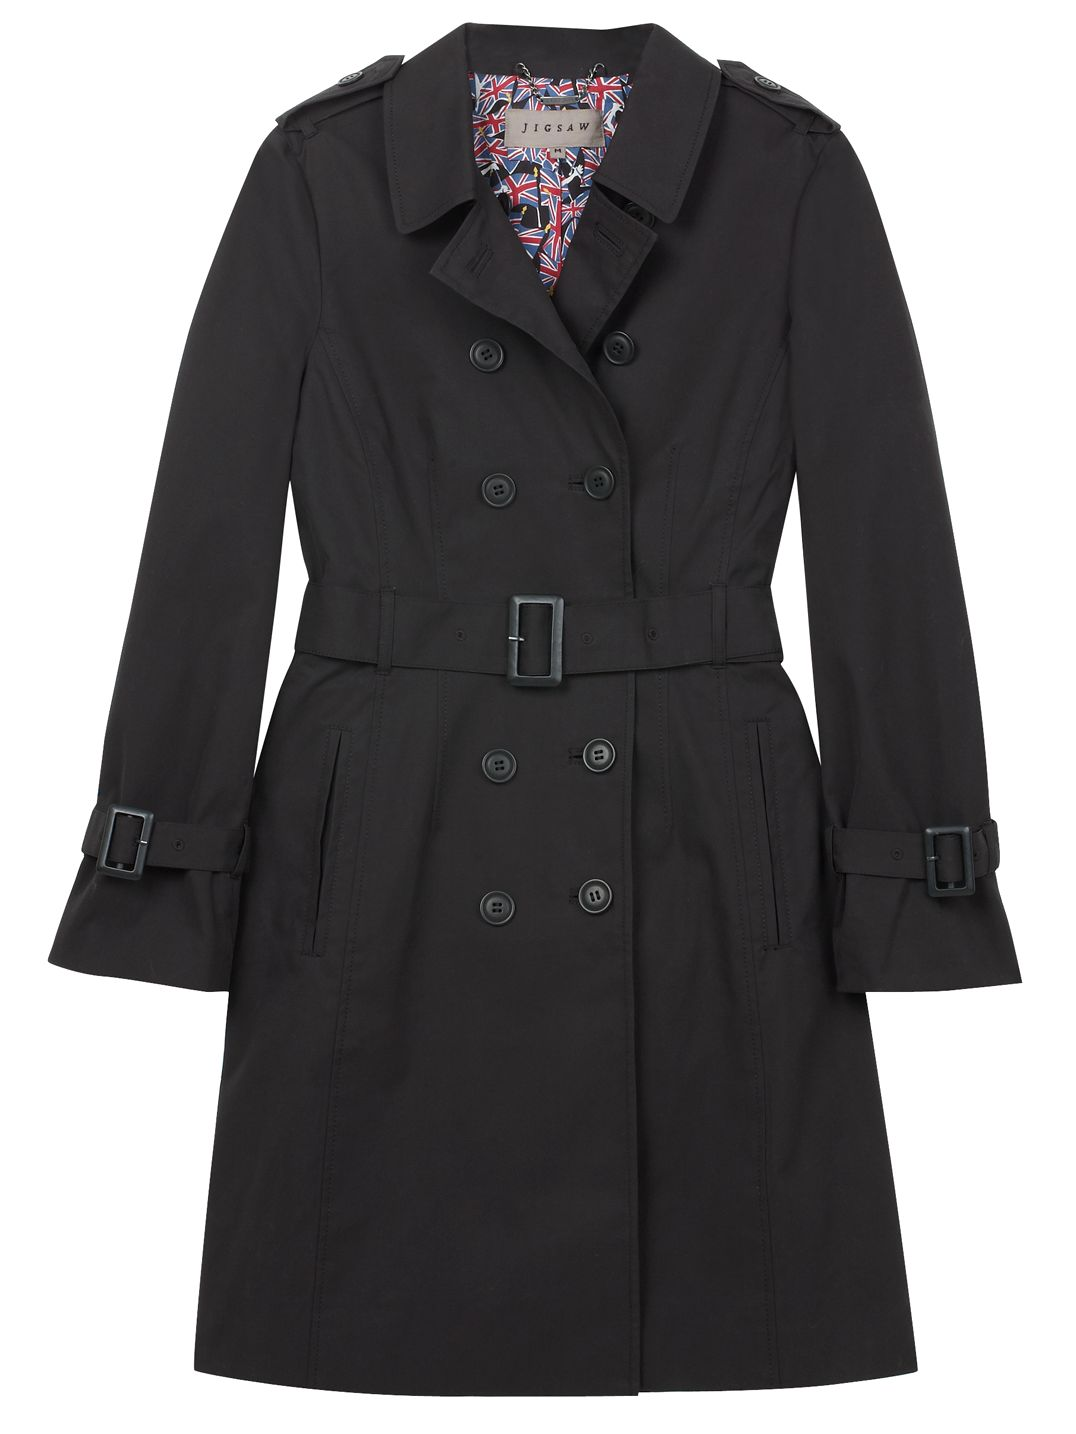 Jigsaw Coated Cotton Trench Coat, Black at John Lewis